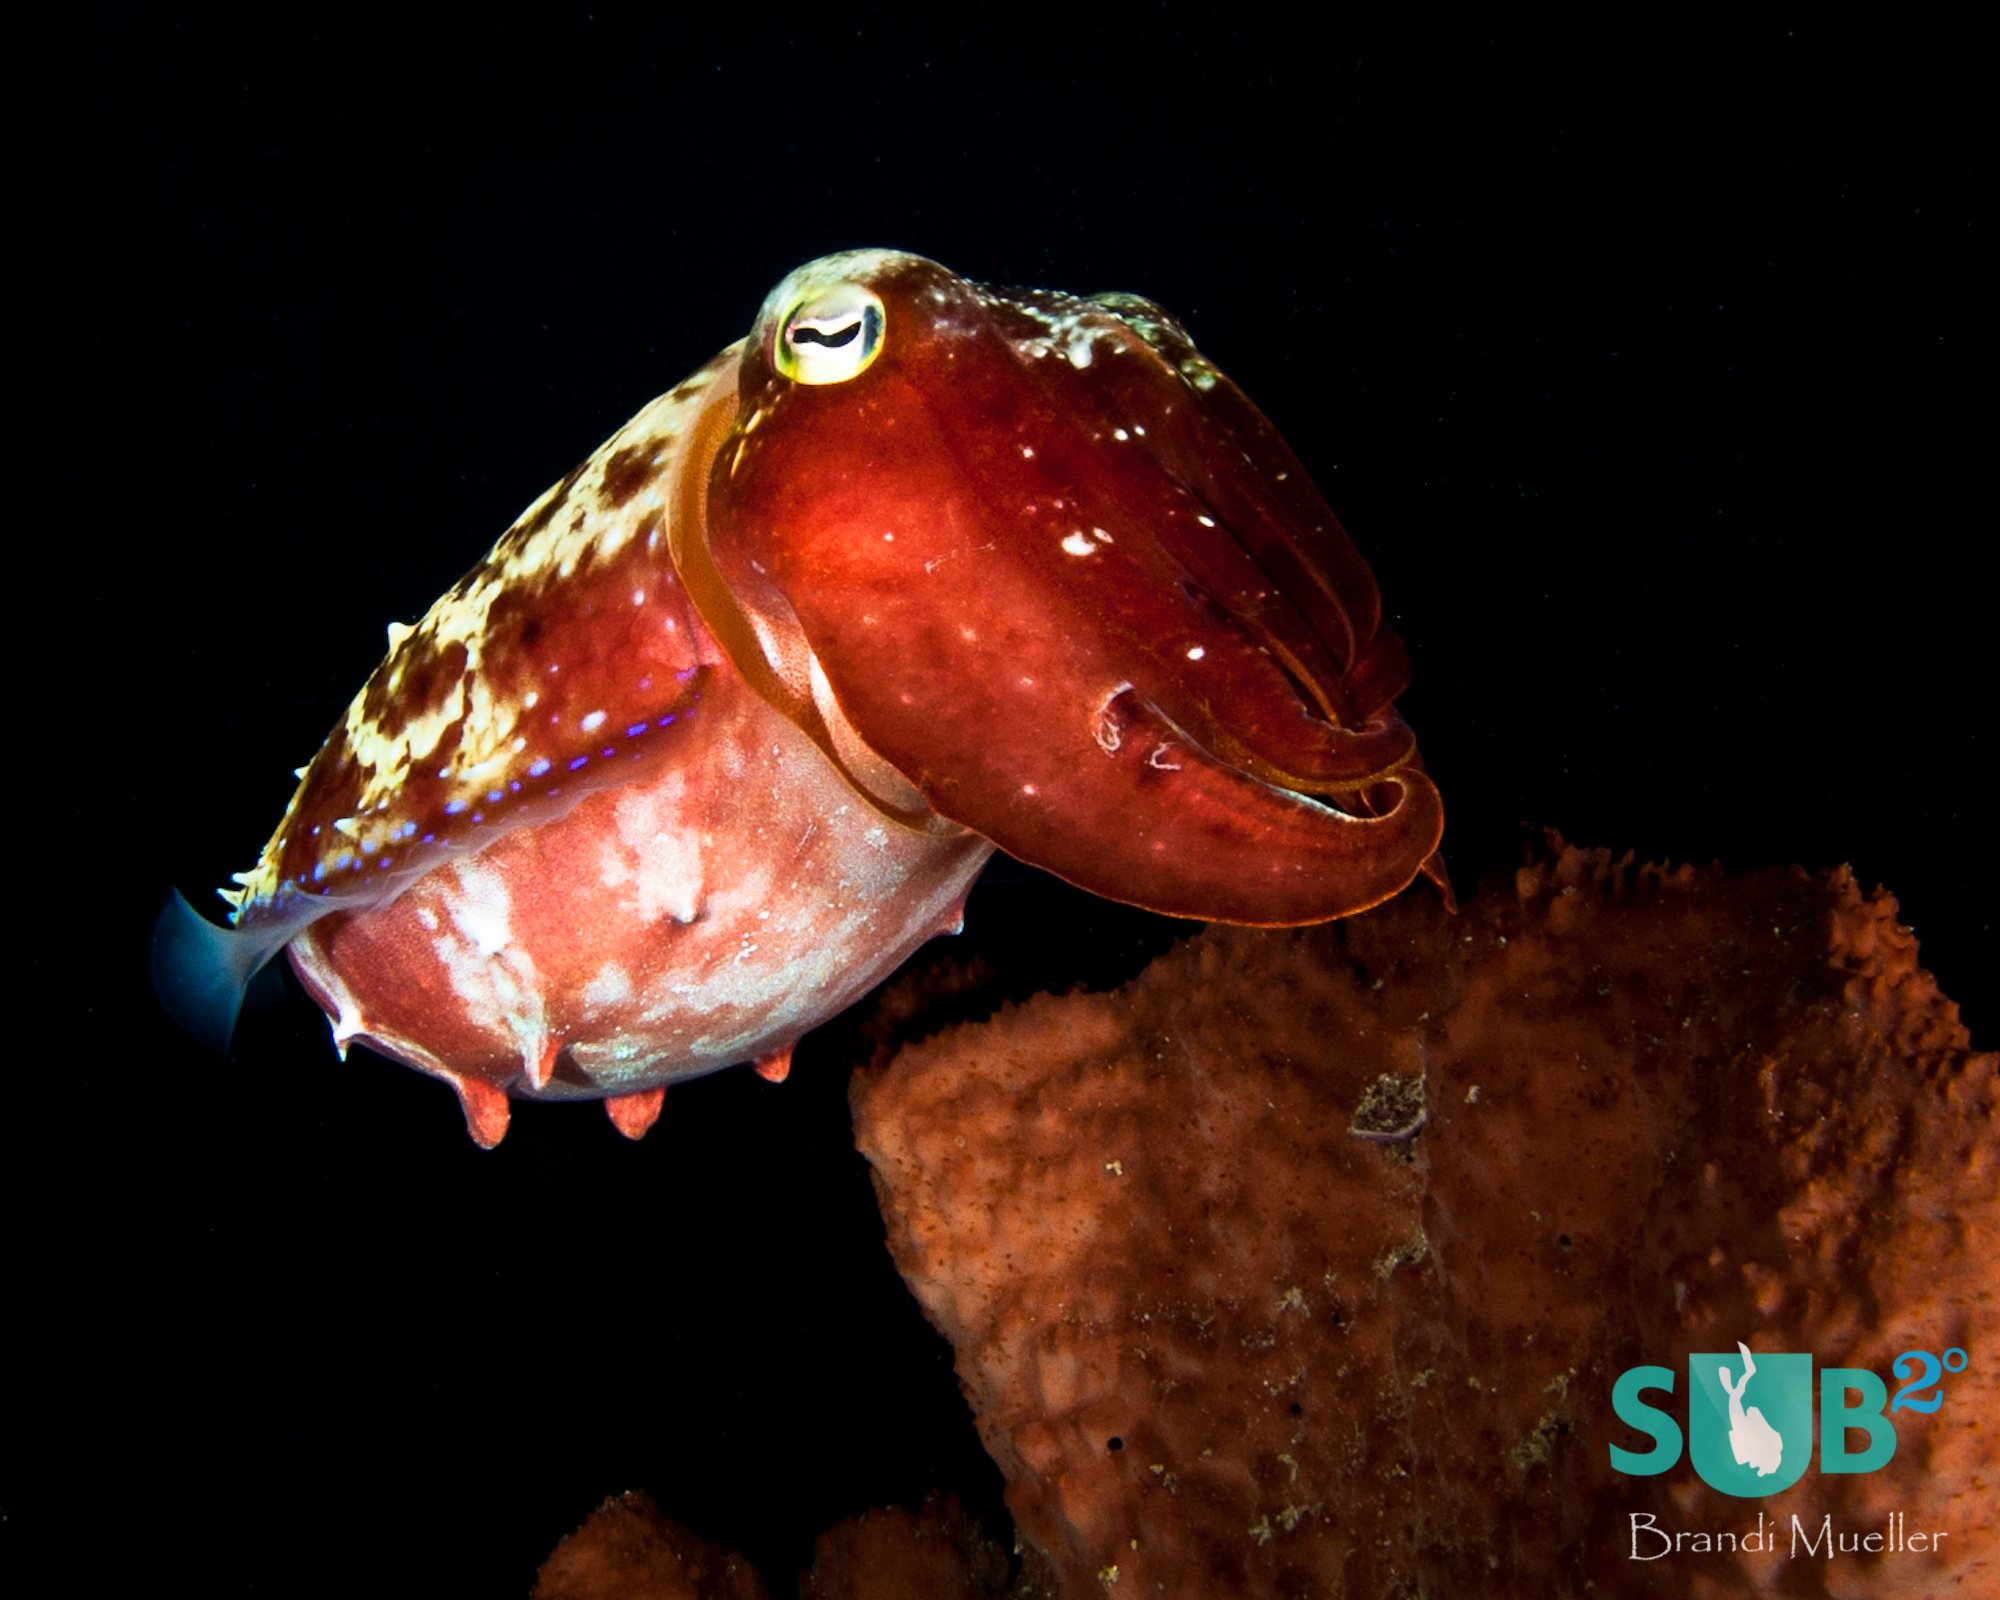 A cuttlefish tries to blend in with a sponge.  Once it knew it was found it flashed many colors including reds, yellows, and blues.